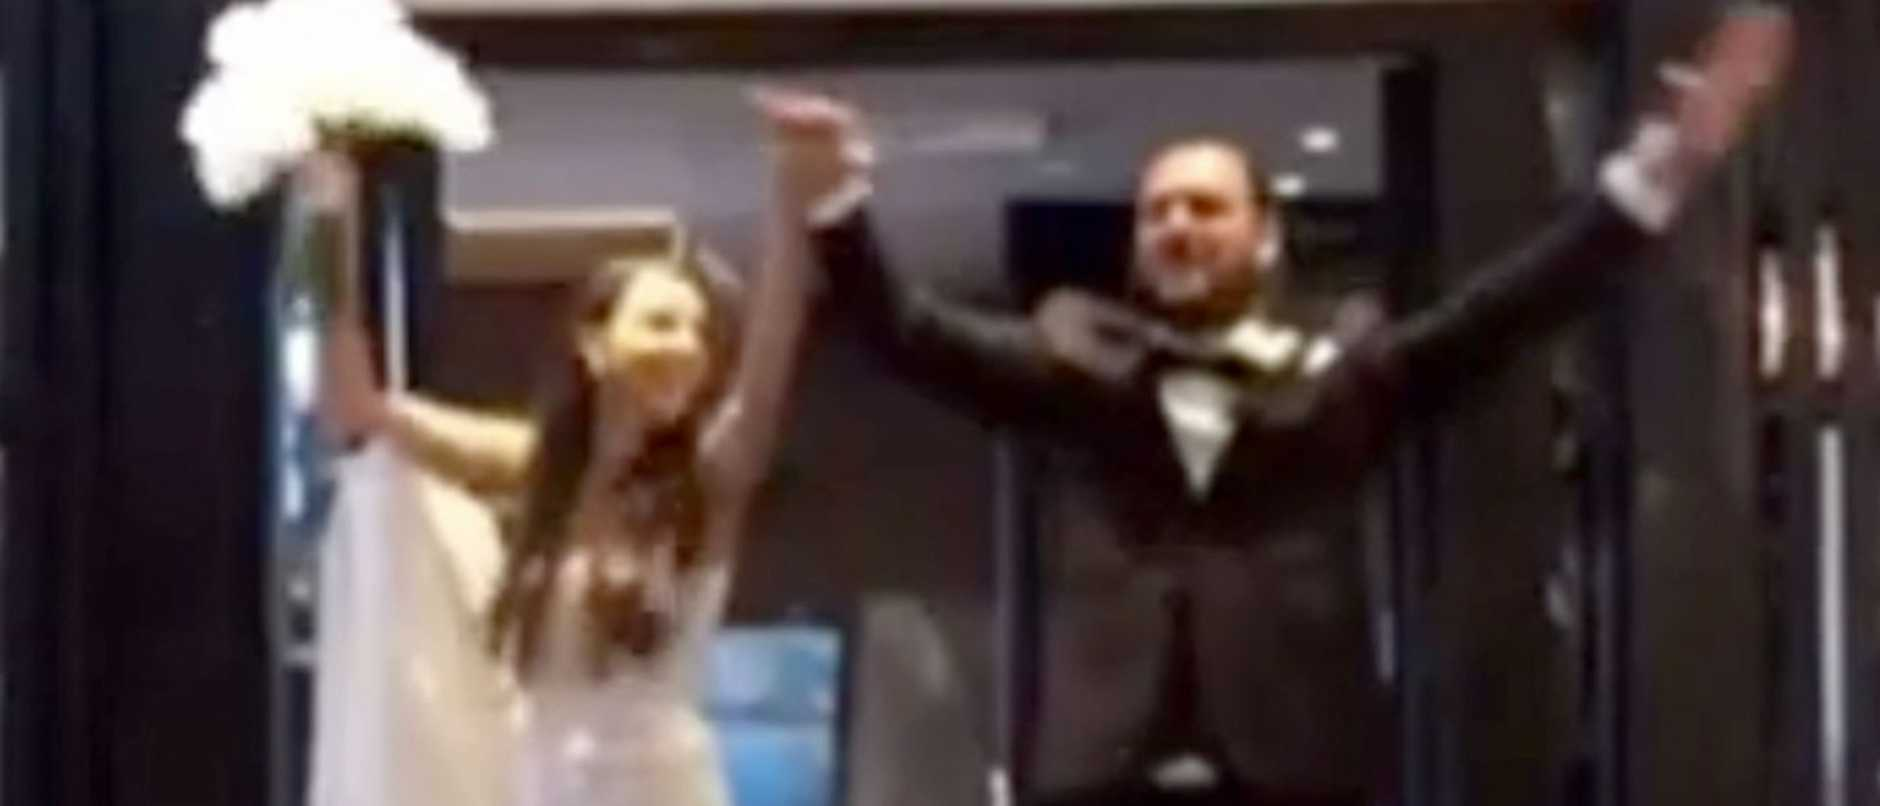 A bride and her family have been fined for breaking strict stay at home orders to hold a wedding in Sydney's CBD as images surfaced of the newlyweds celebrating their big day., Diana Falasca is among 19 people who have been fined for breaching coronavirus restrictions by leaving the northern beaches and venturing to Pyrmont venue, Doltone House. The groom did not break any public health orders.